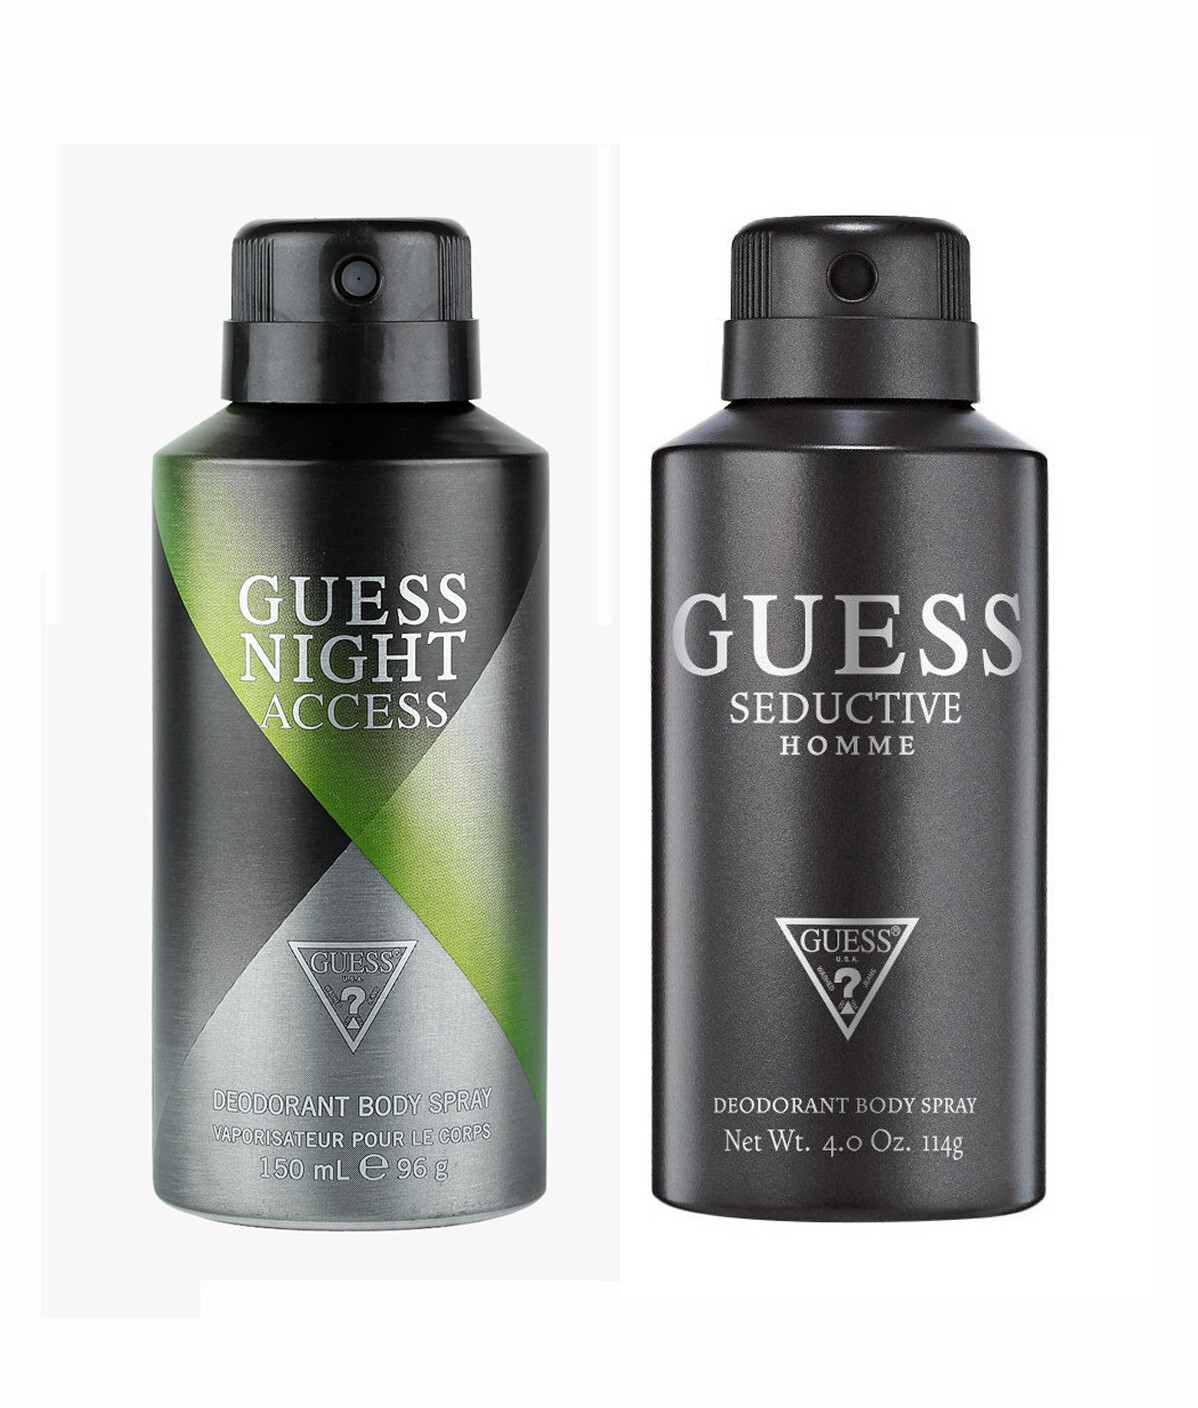 Guess Seductive Home + Night Access Deo Combo Set - Pack of 2